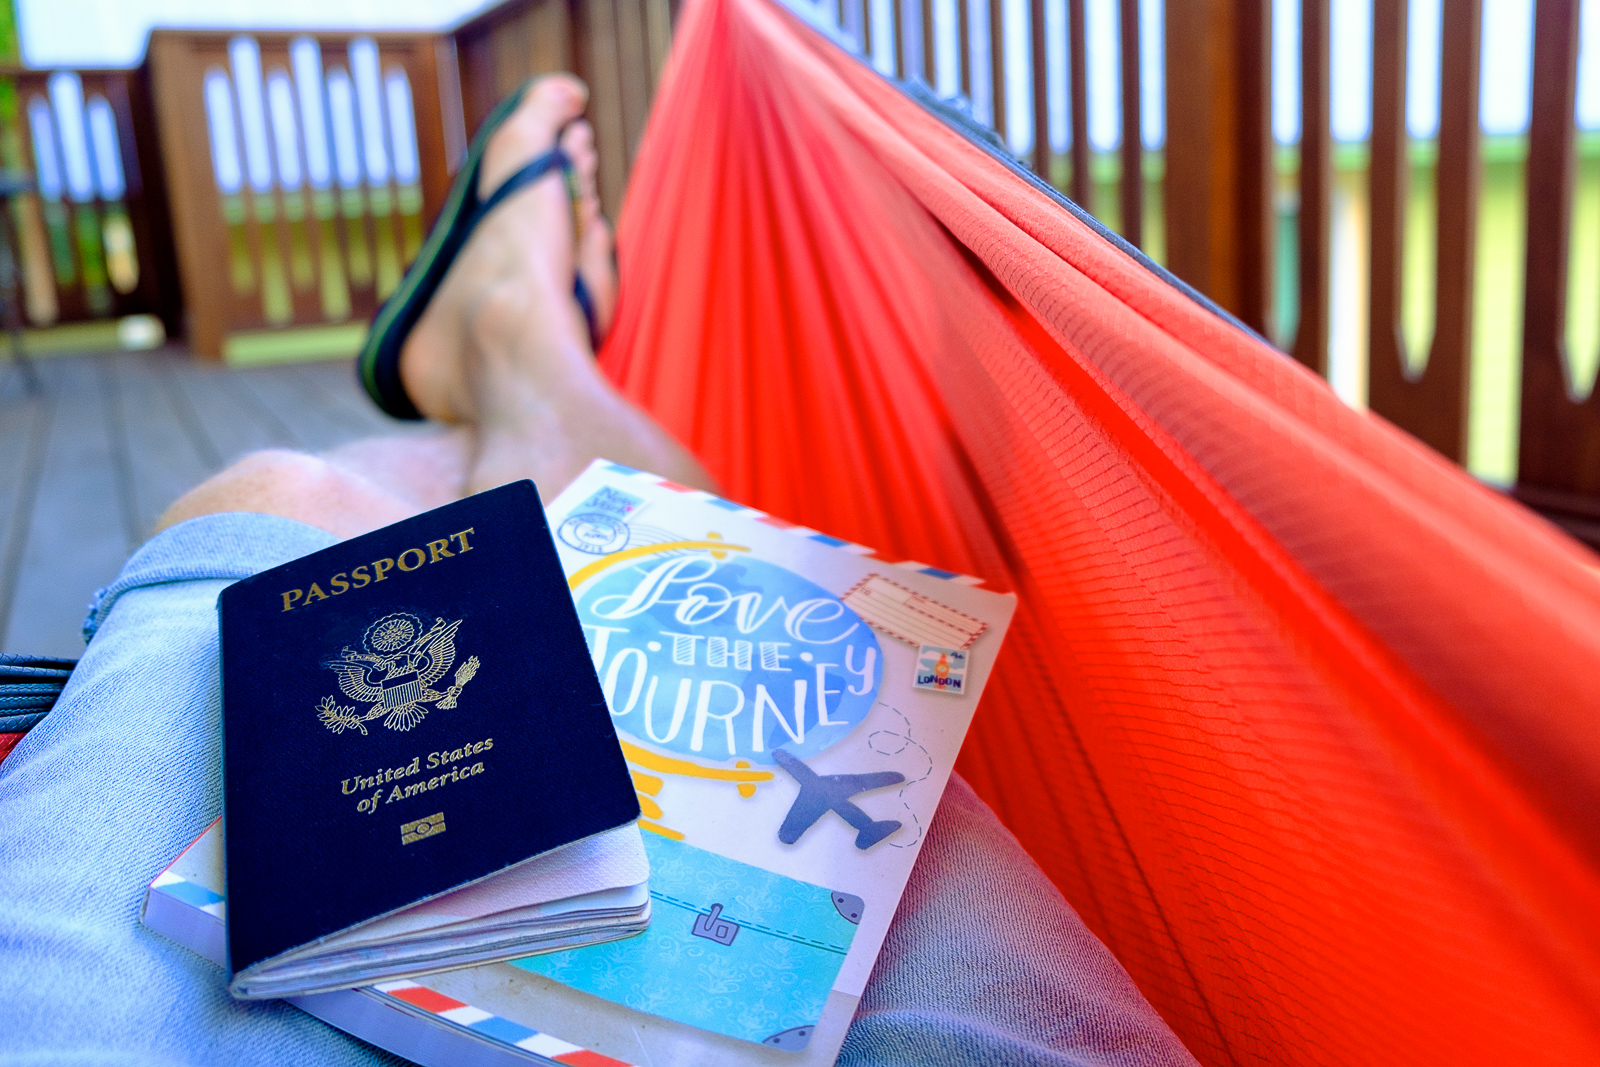 How To Apply For A Passport Work And Travel In Australia Holiday Visa